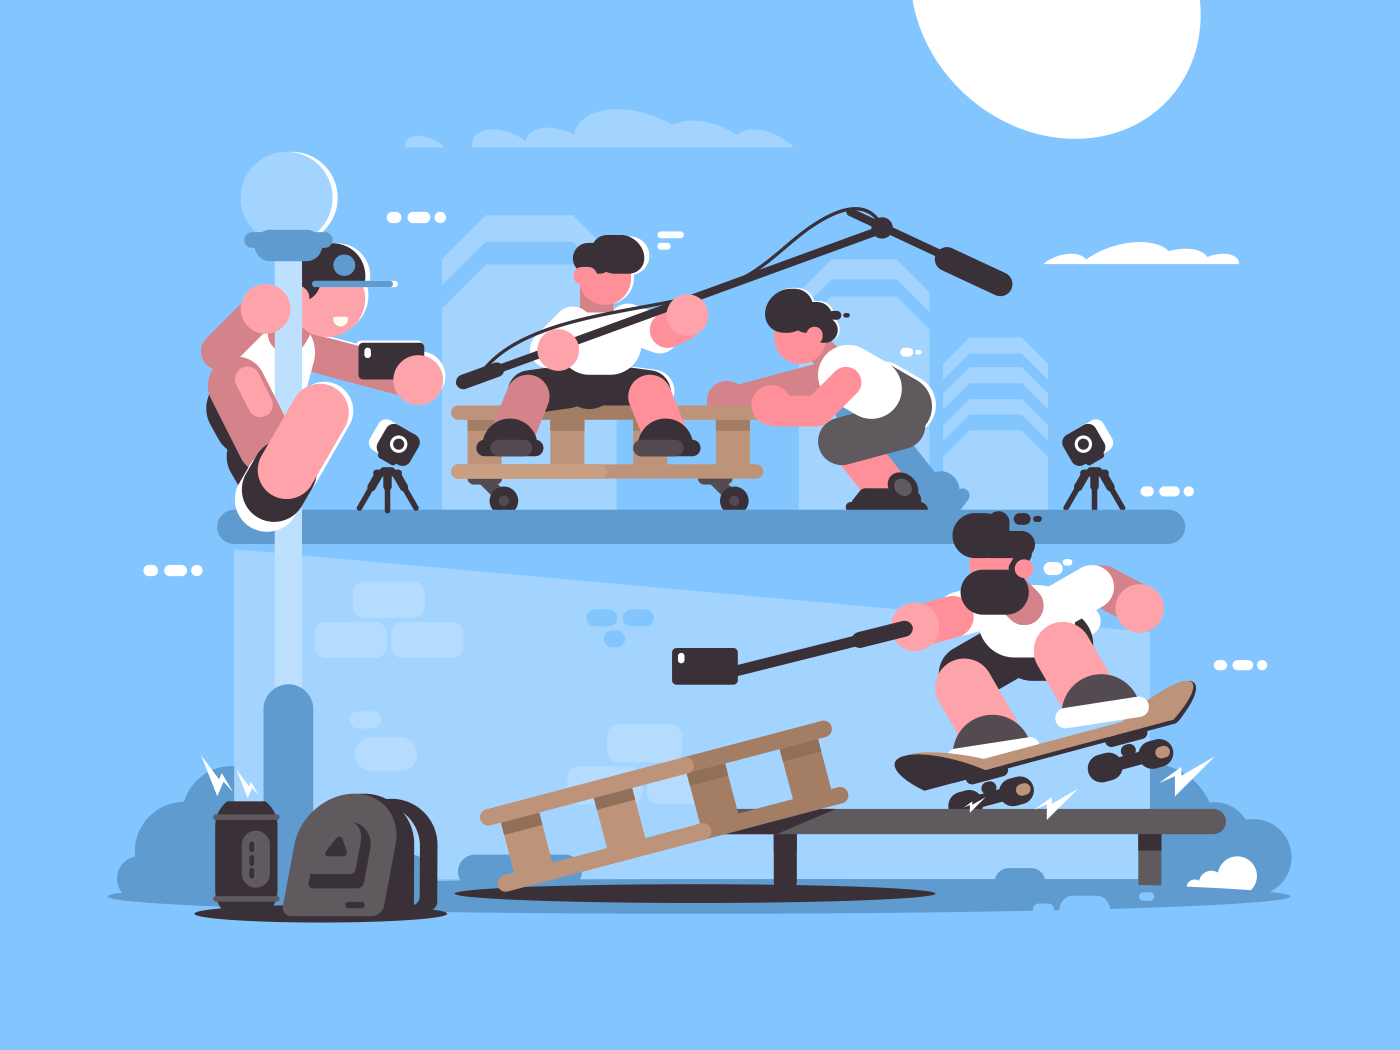 Guy makes selfie photo and video on camera. Vector illustration